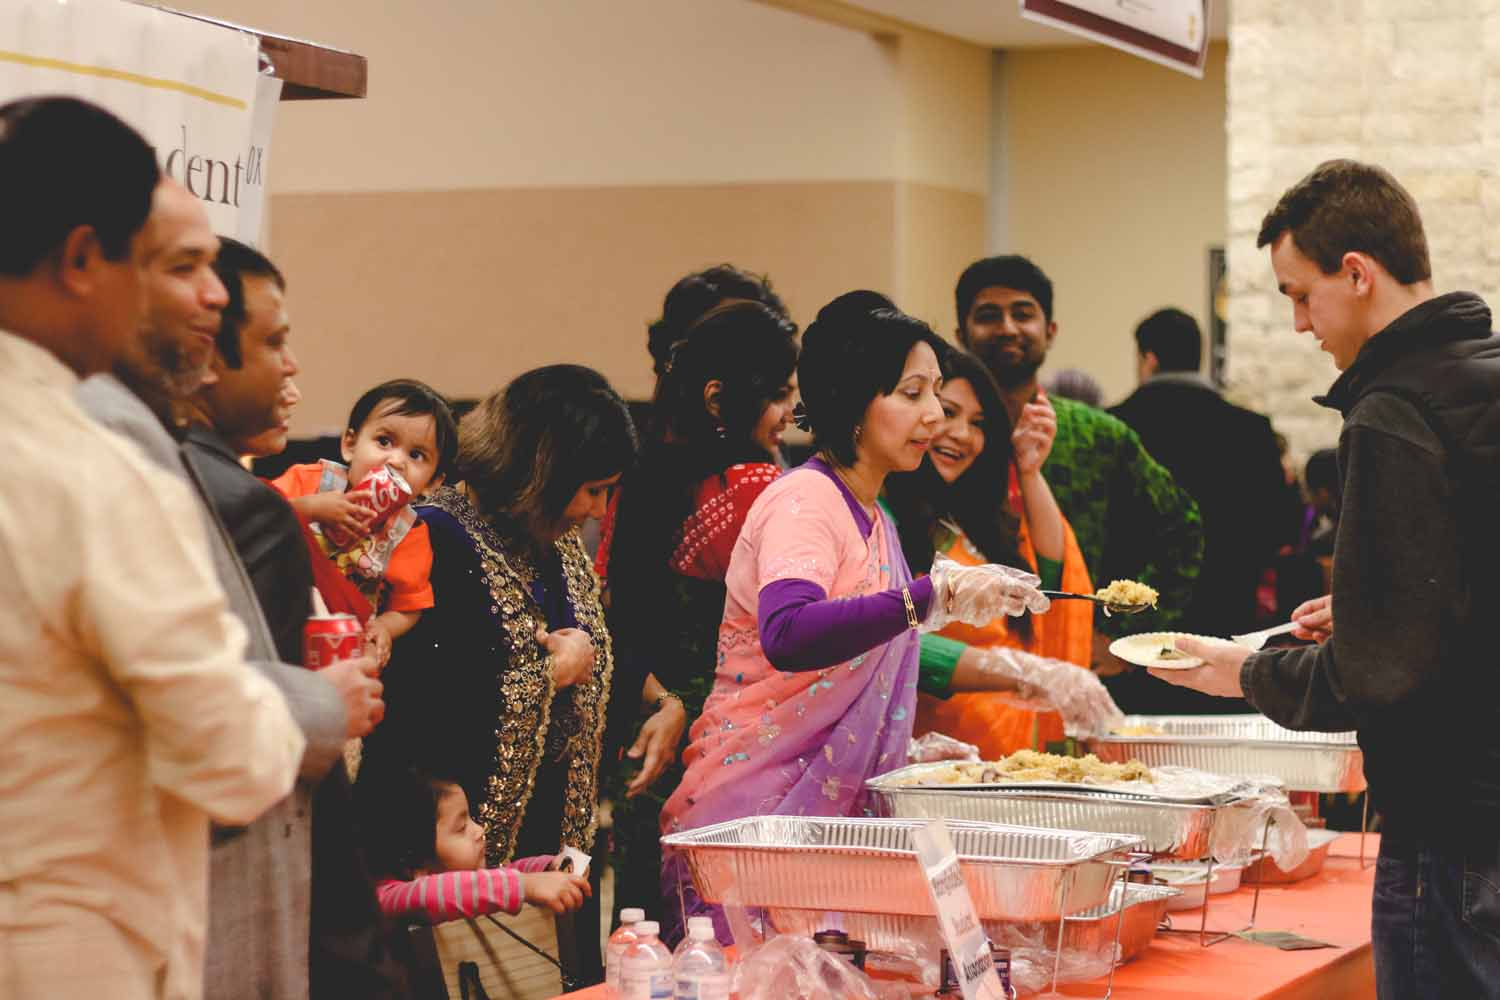 The Bangladesh Student Association shares traditional dishes with fellow MU students. Photo by Hanna Yowell.